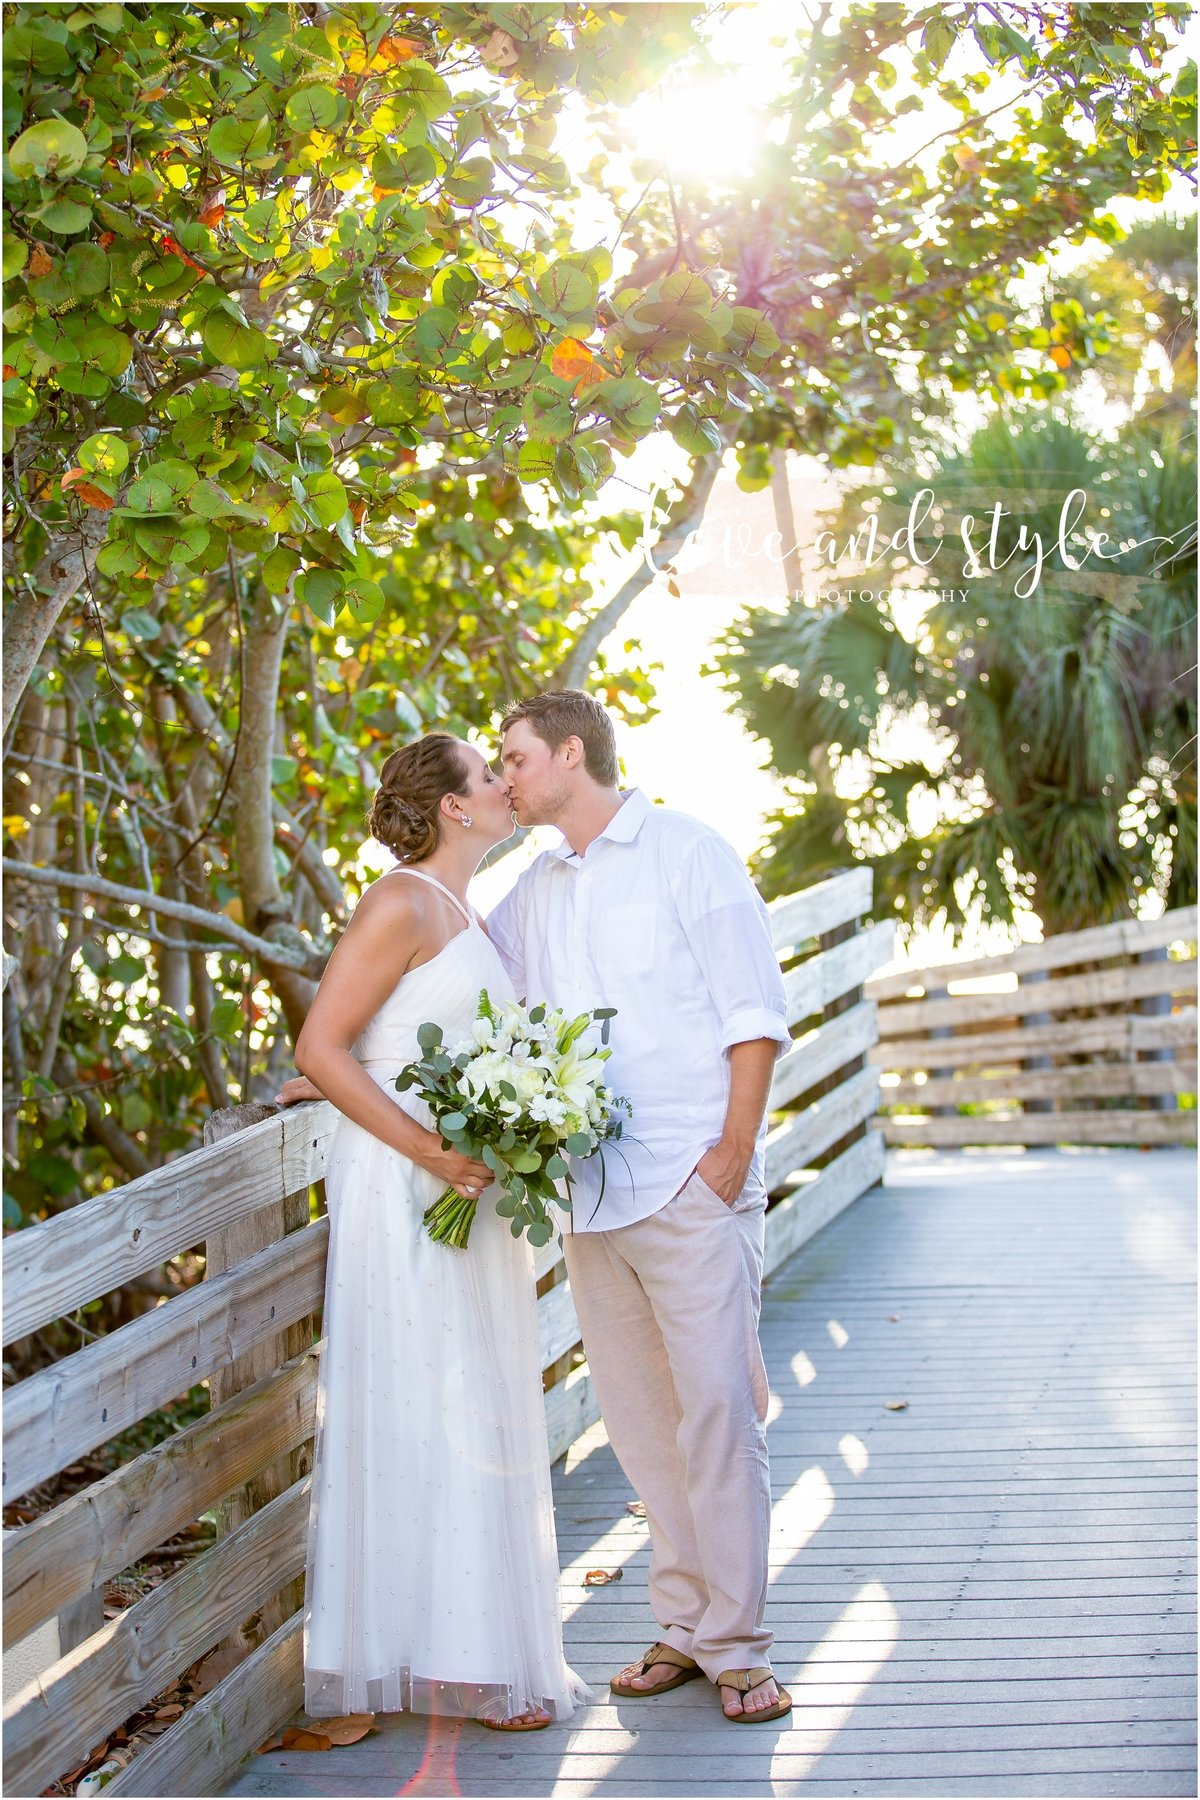 Lido Beach Wedding Photography of bride and groom kissing on the wooden pathway to the beach